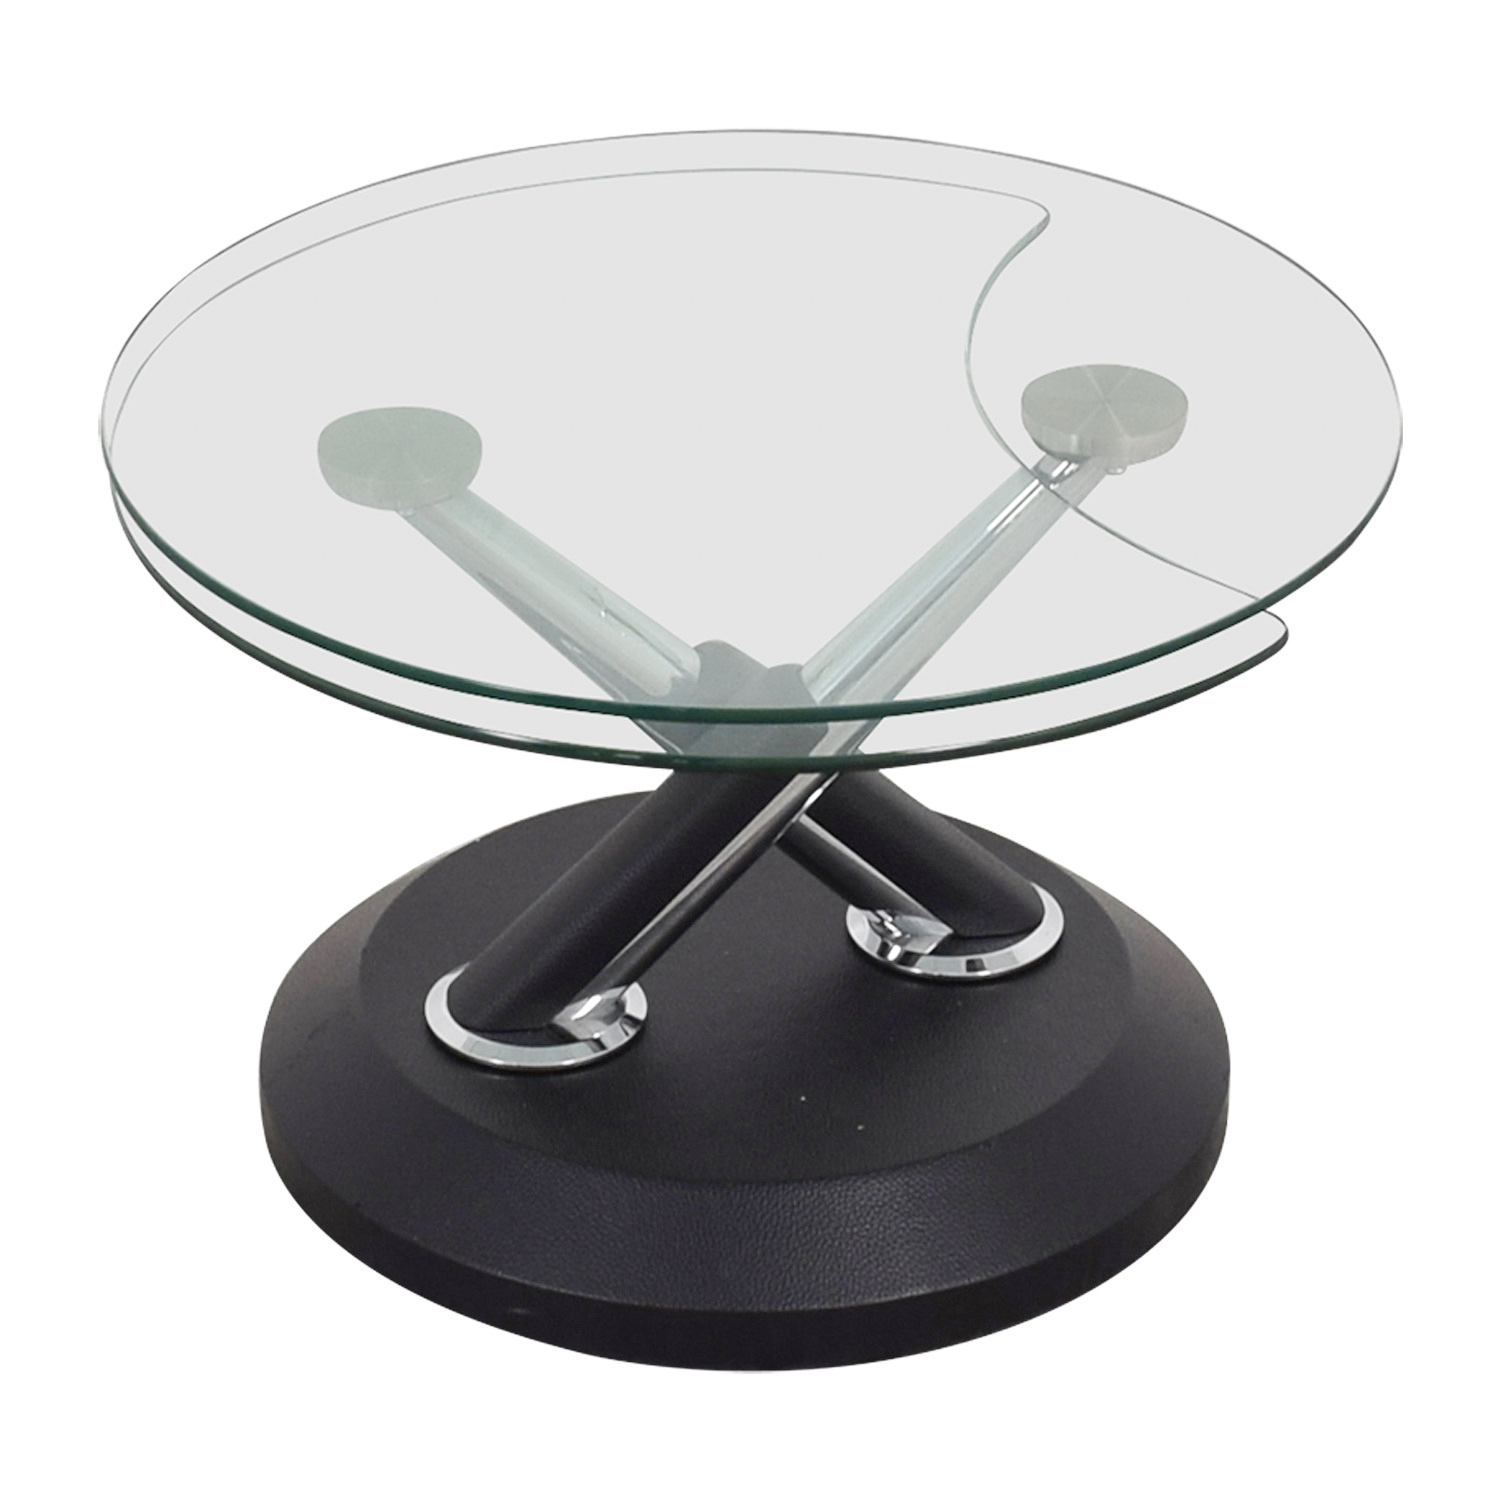 West Elm West Elm Glass Swivel Coffee Table coupon